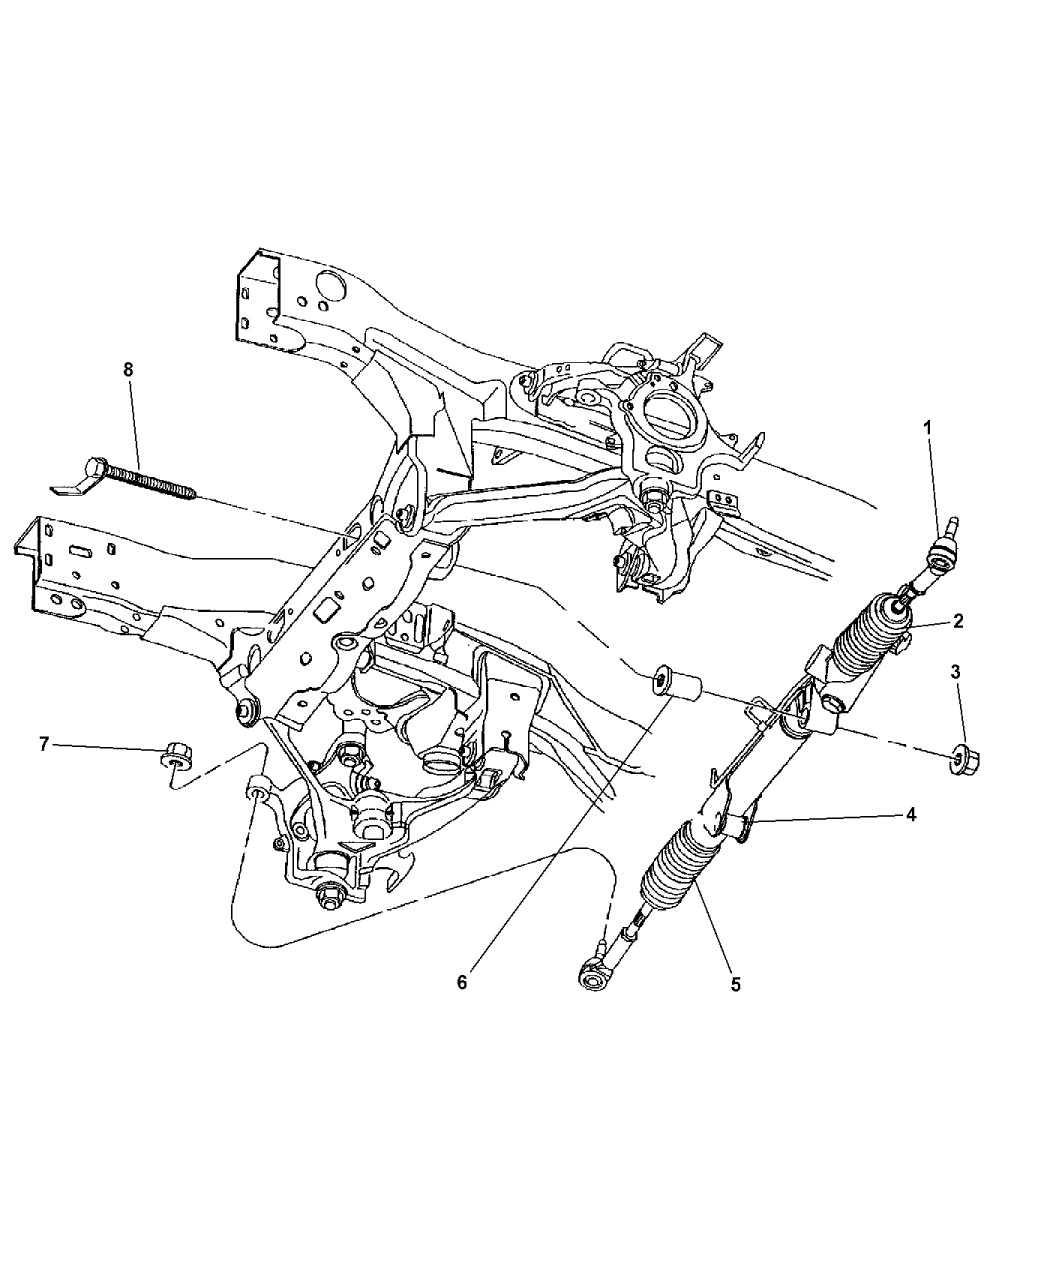 Genuine Mopar GEAR-POWER STEERING